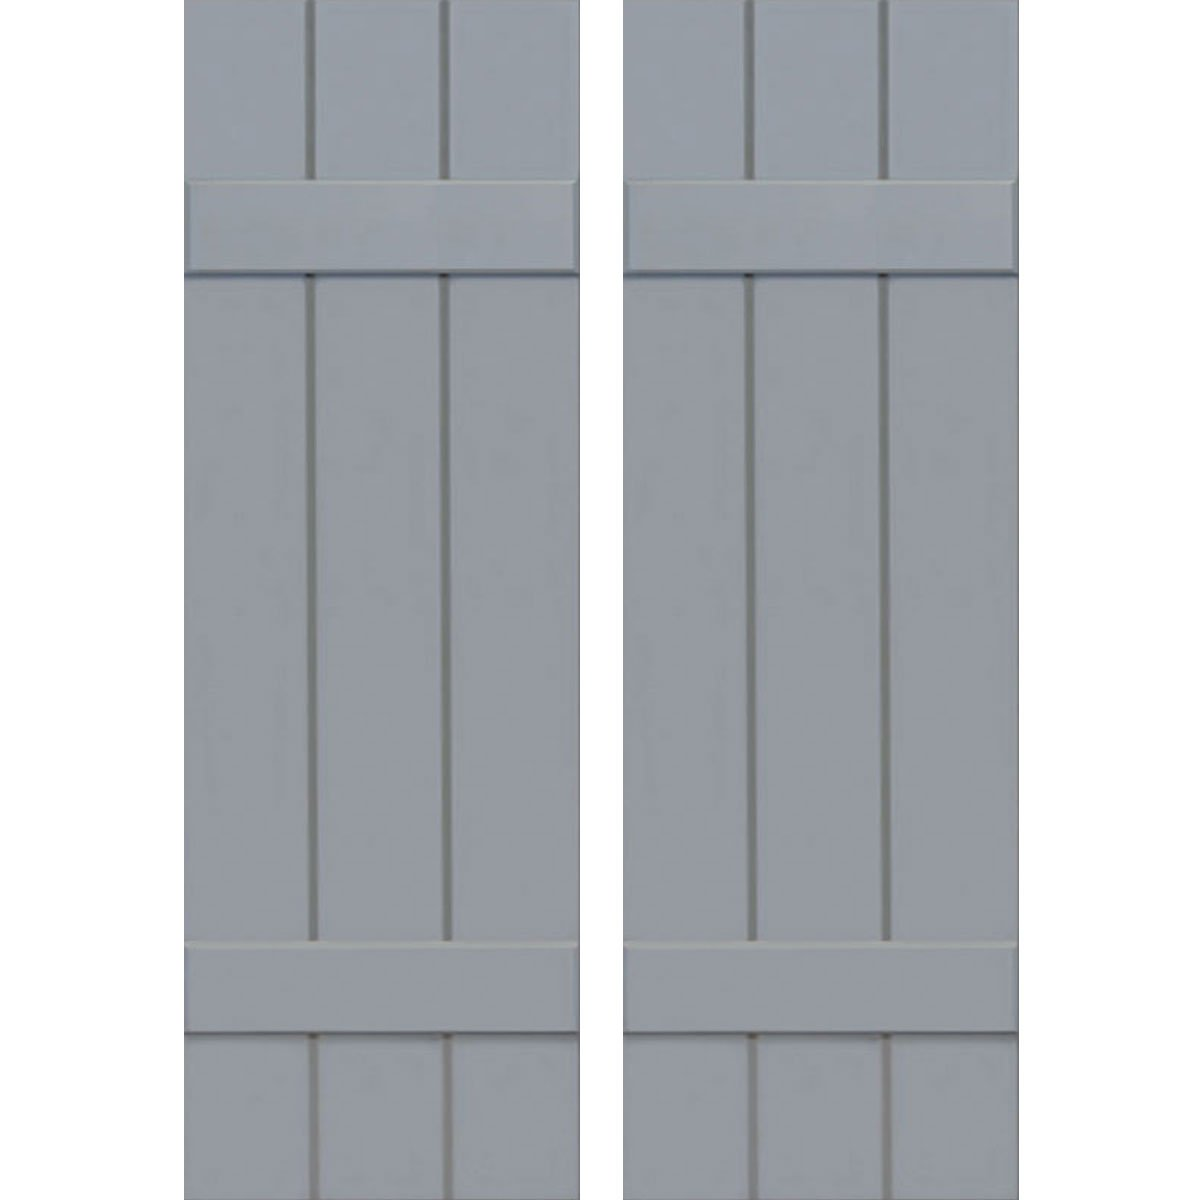 Ekena Millwork CWB12X028UNC Exterior Three Board Composite Wood Board-N-Batten Shutters with Installation Brackets (Per Pair), Unfinished, 12'' W x 28'' H